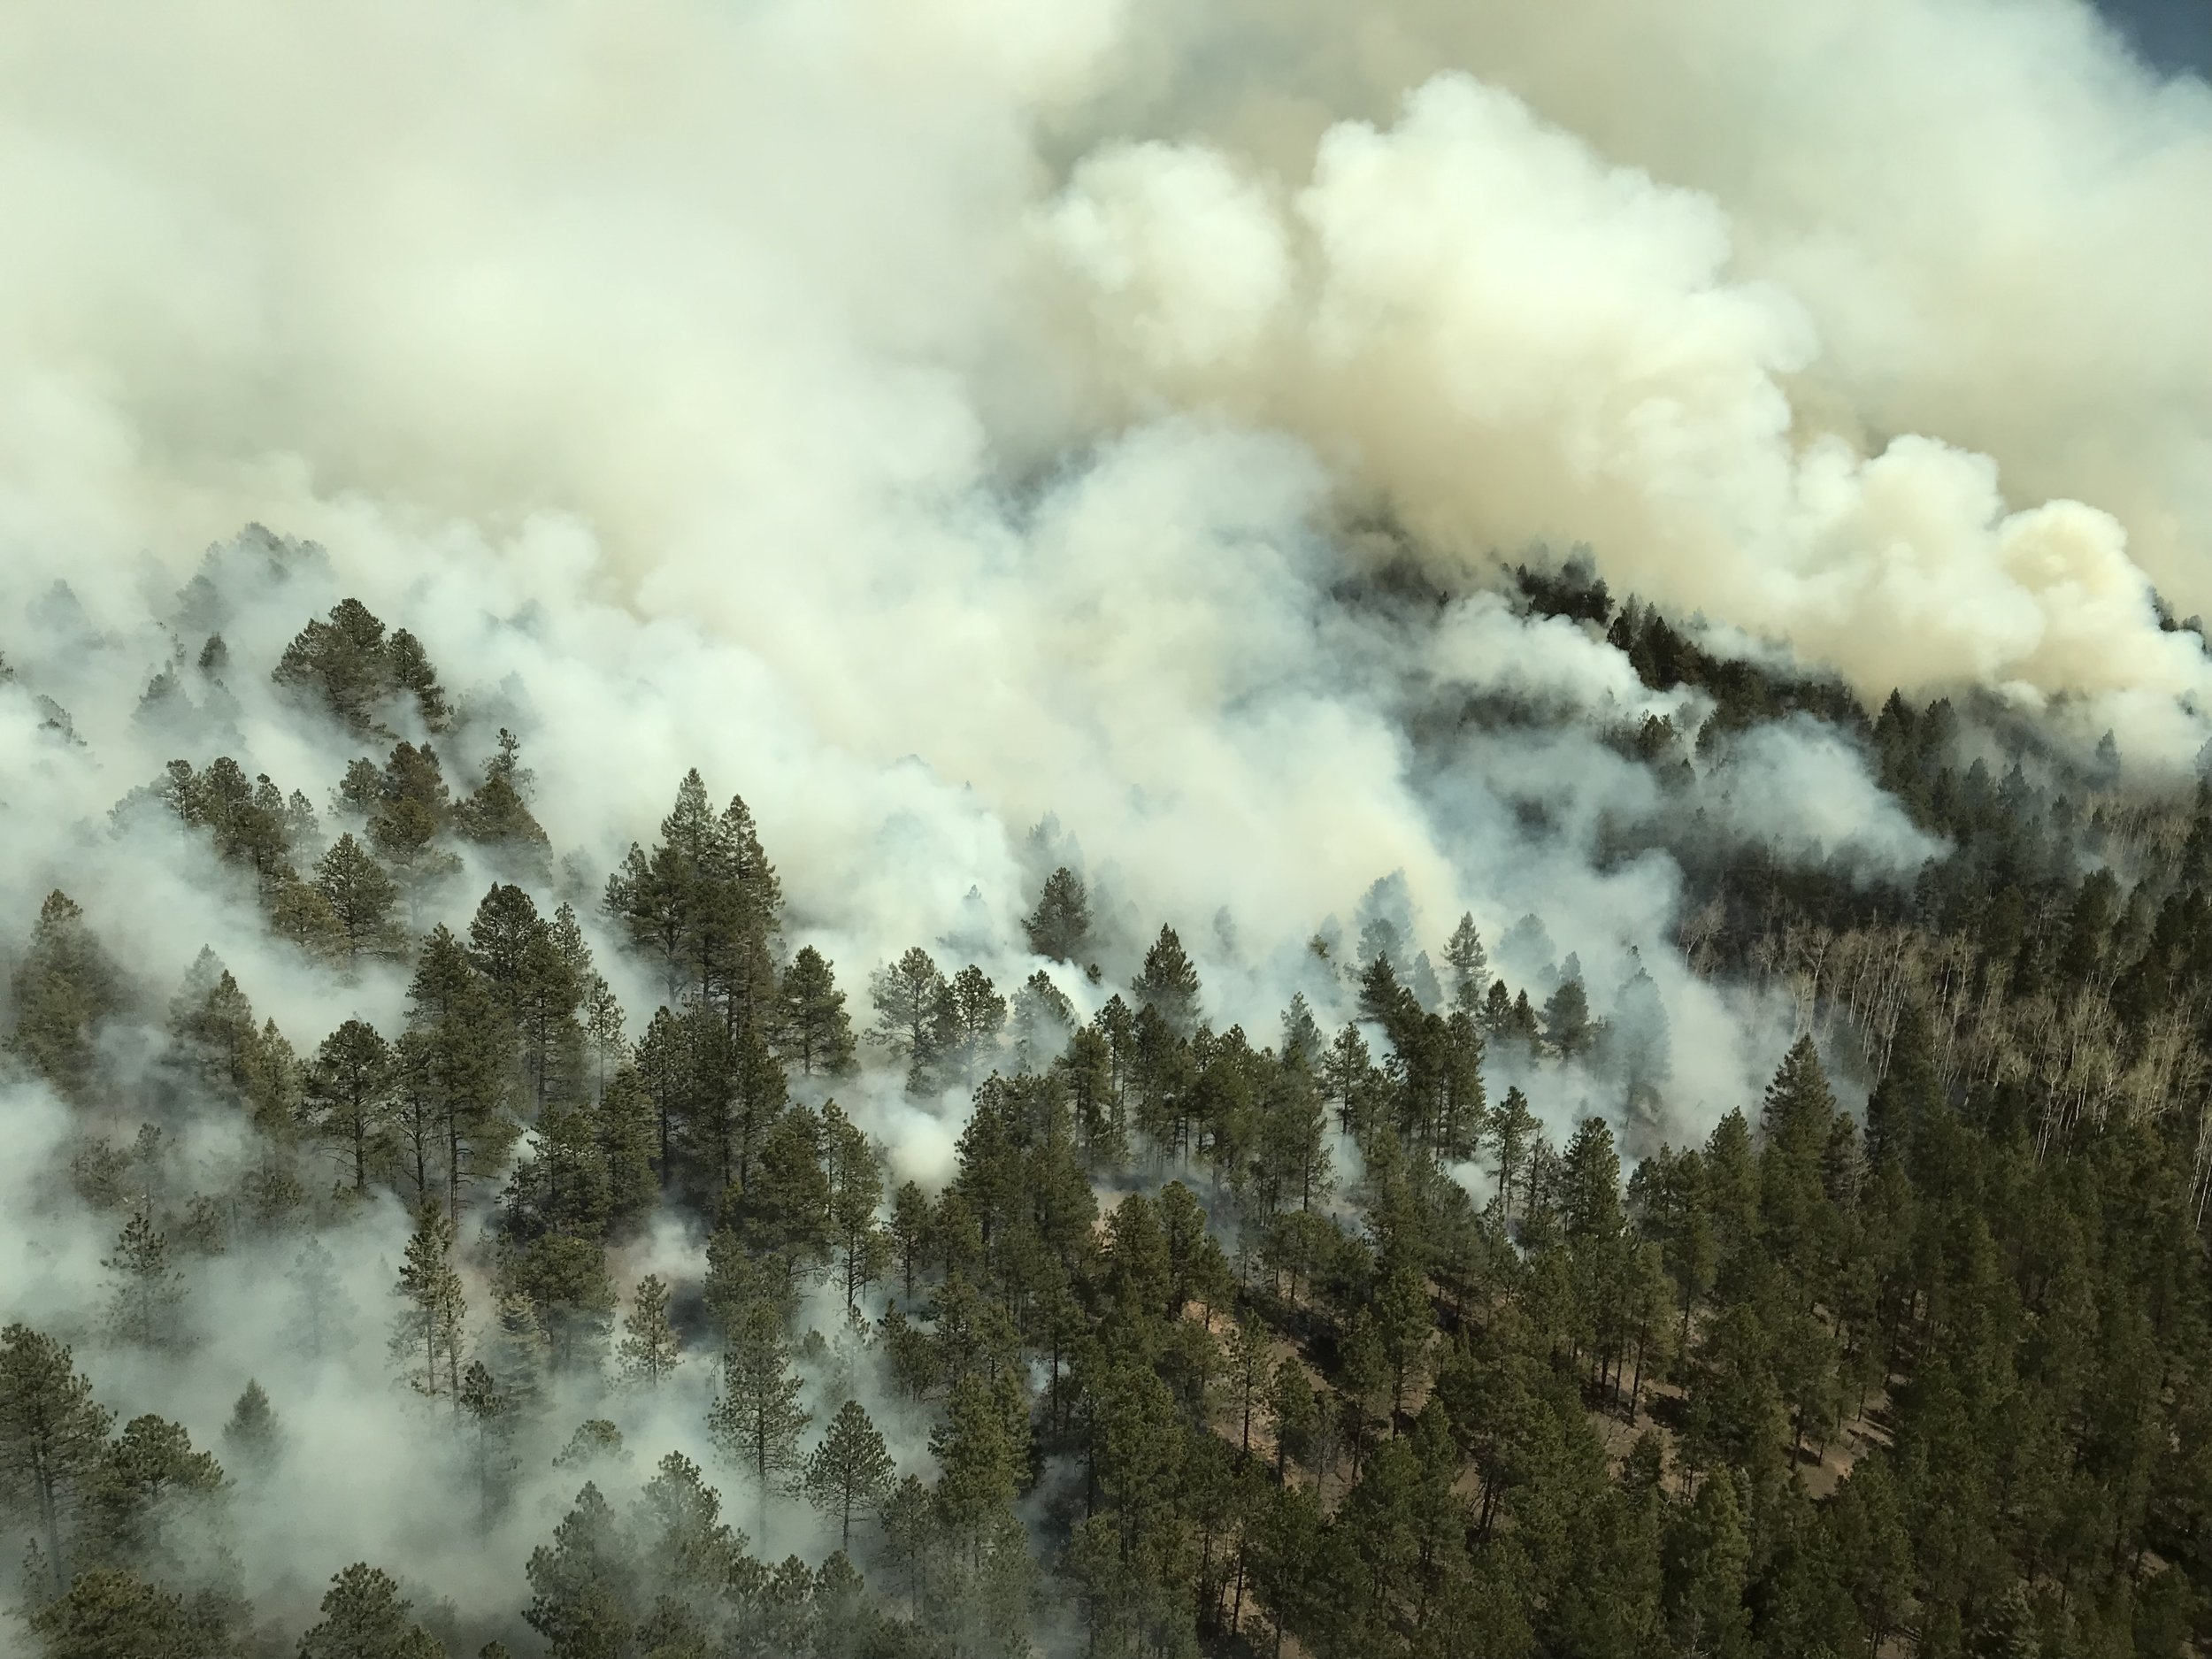 Photo taken from a helicopter during fire ignitions on the Pacheco Rx